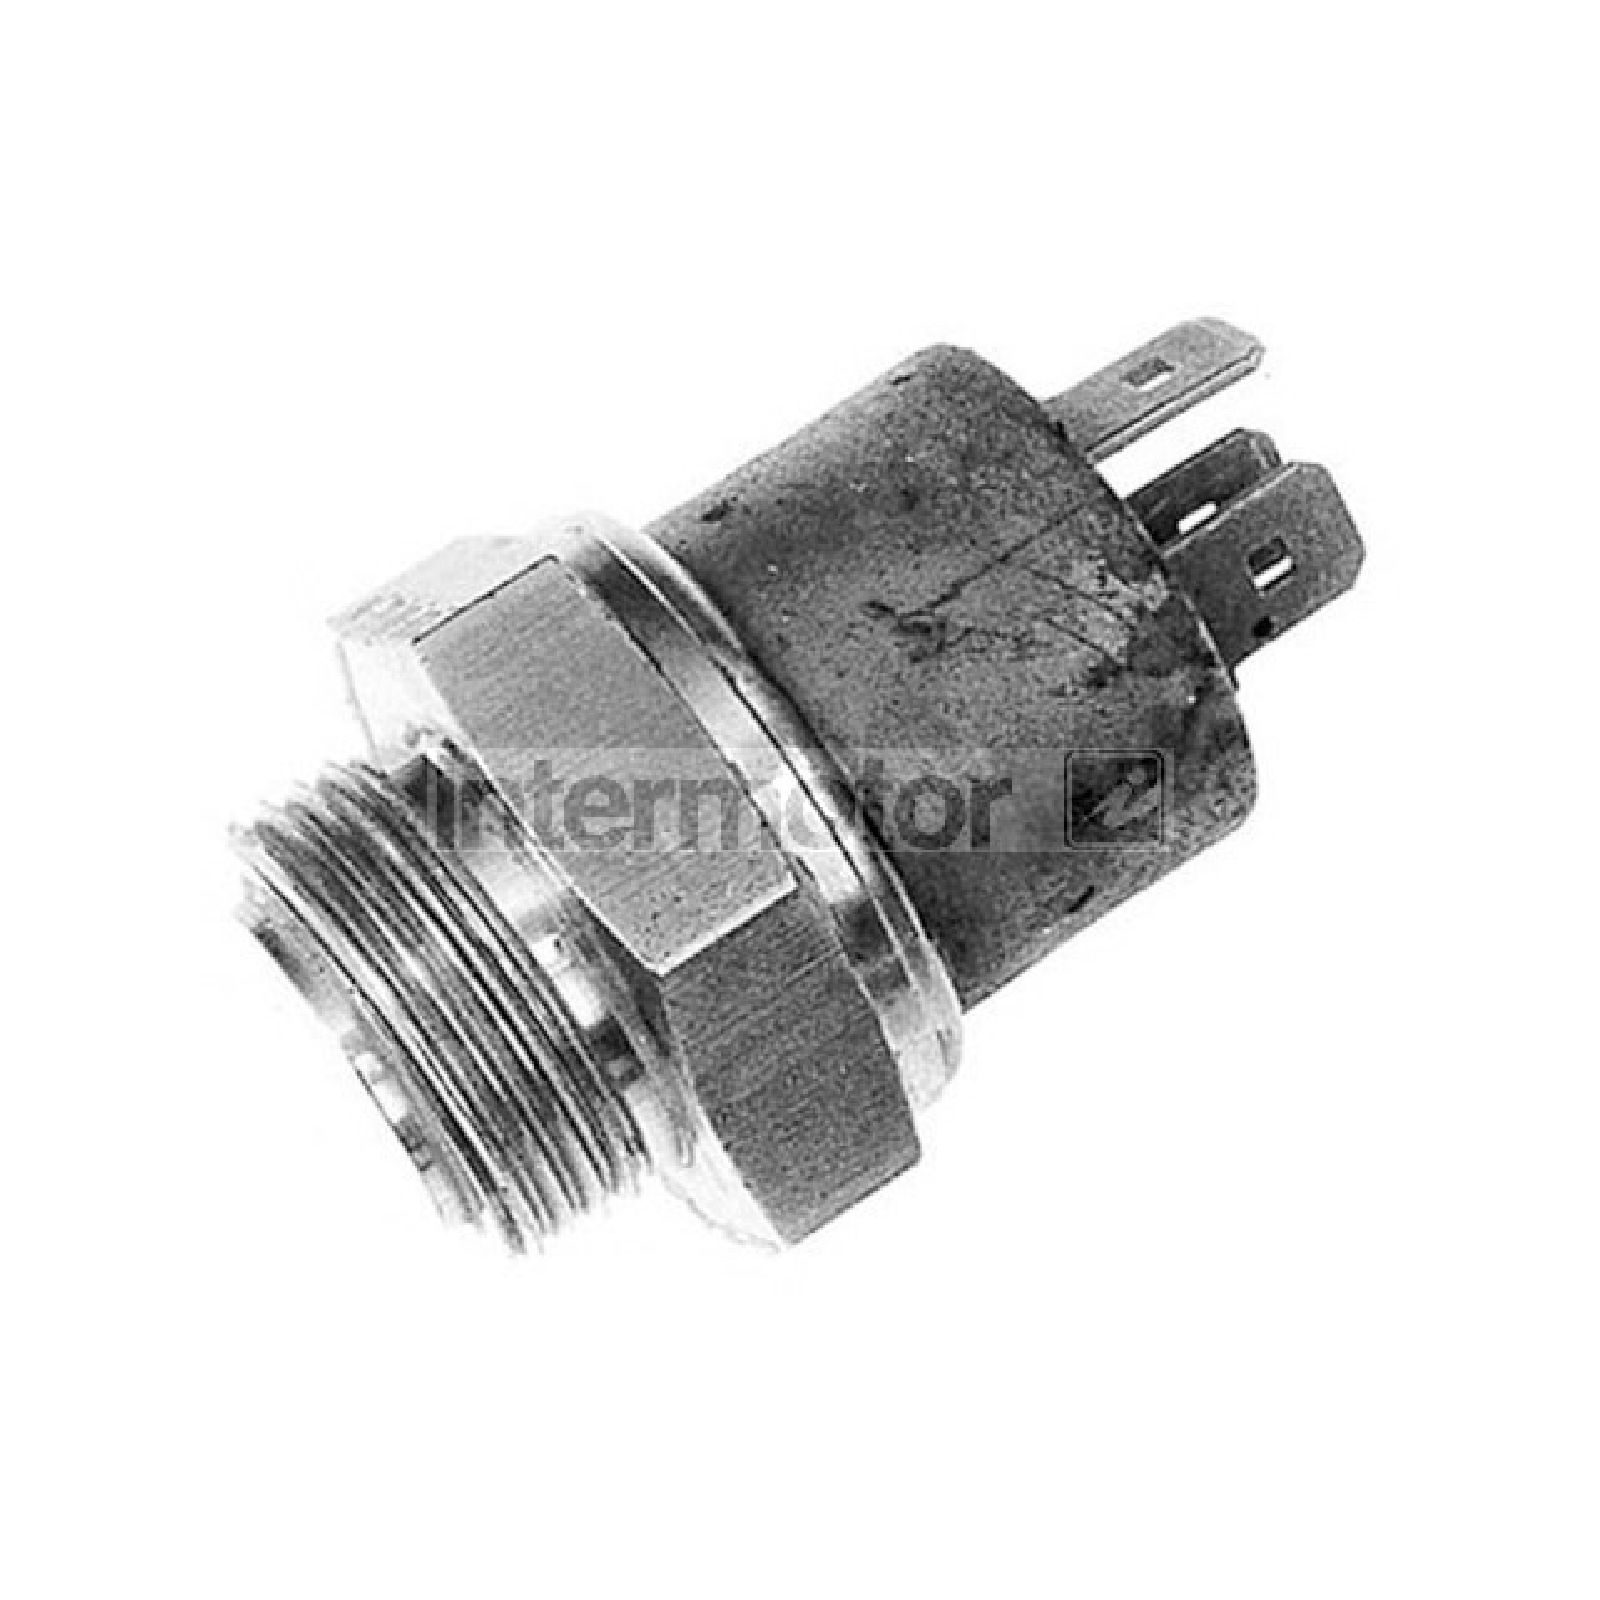 Cooling Fan Temperature Switch : Variant intermotor radiator fan temperature switch engine